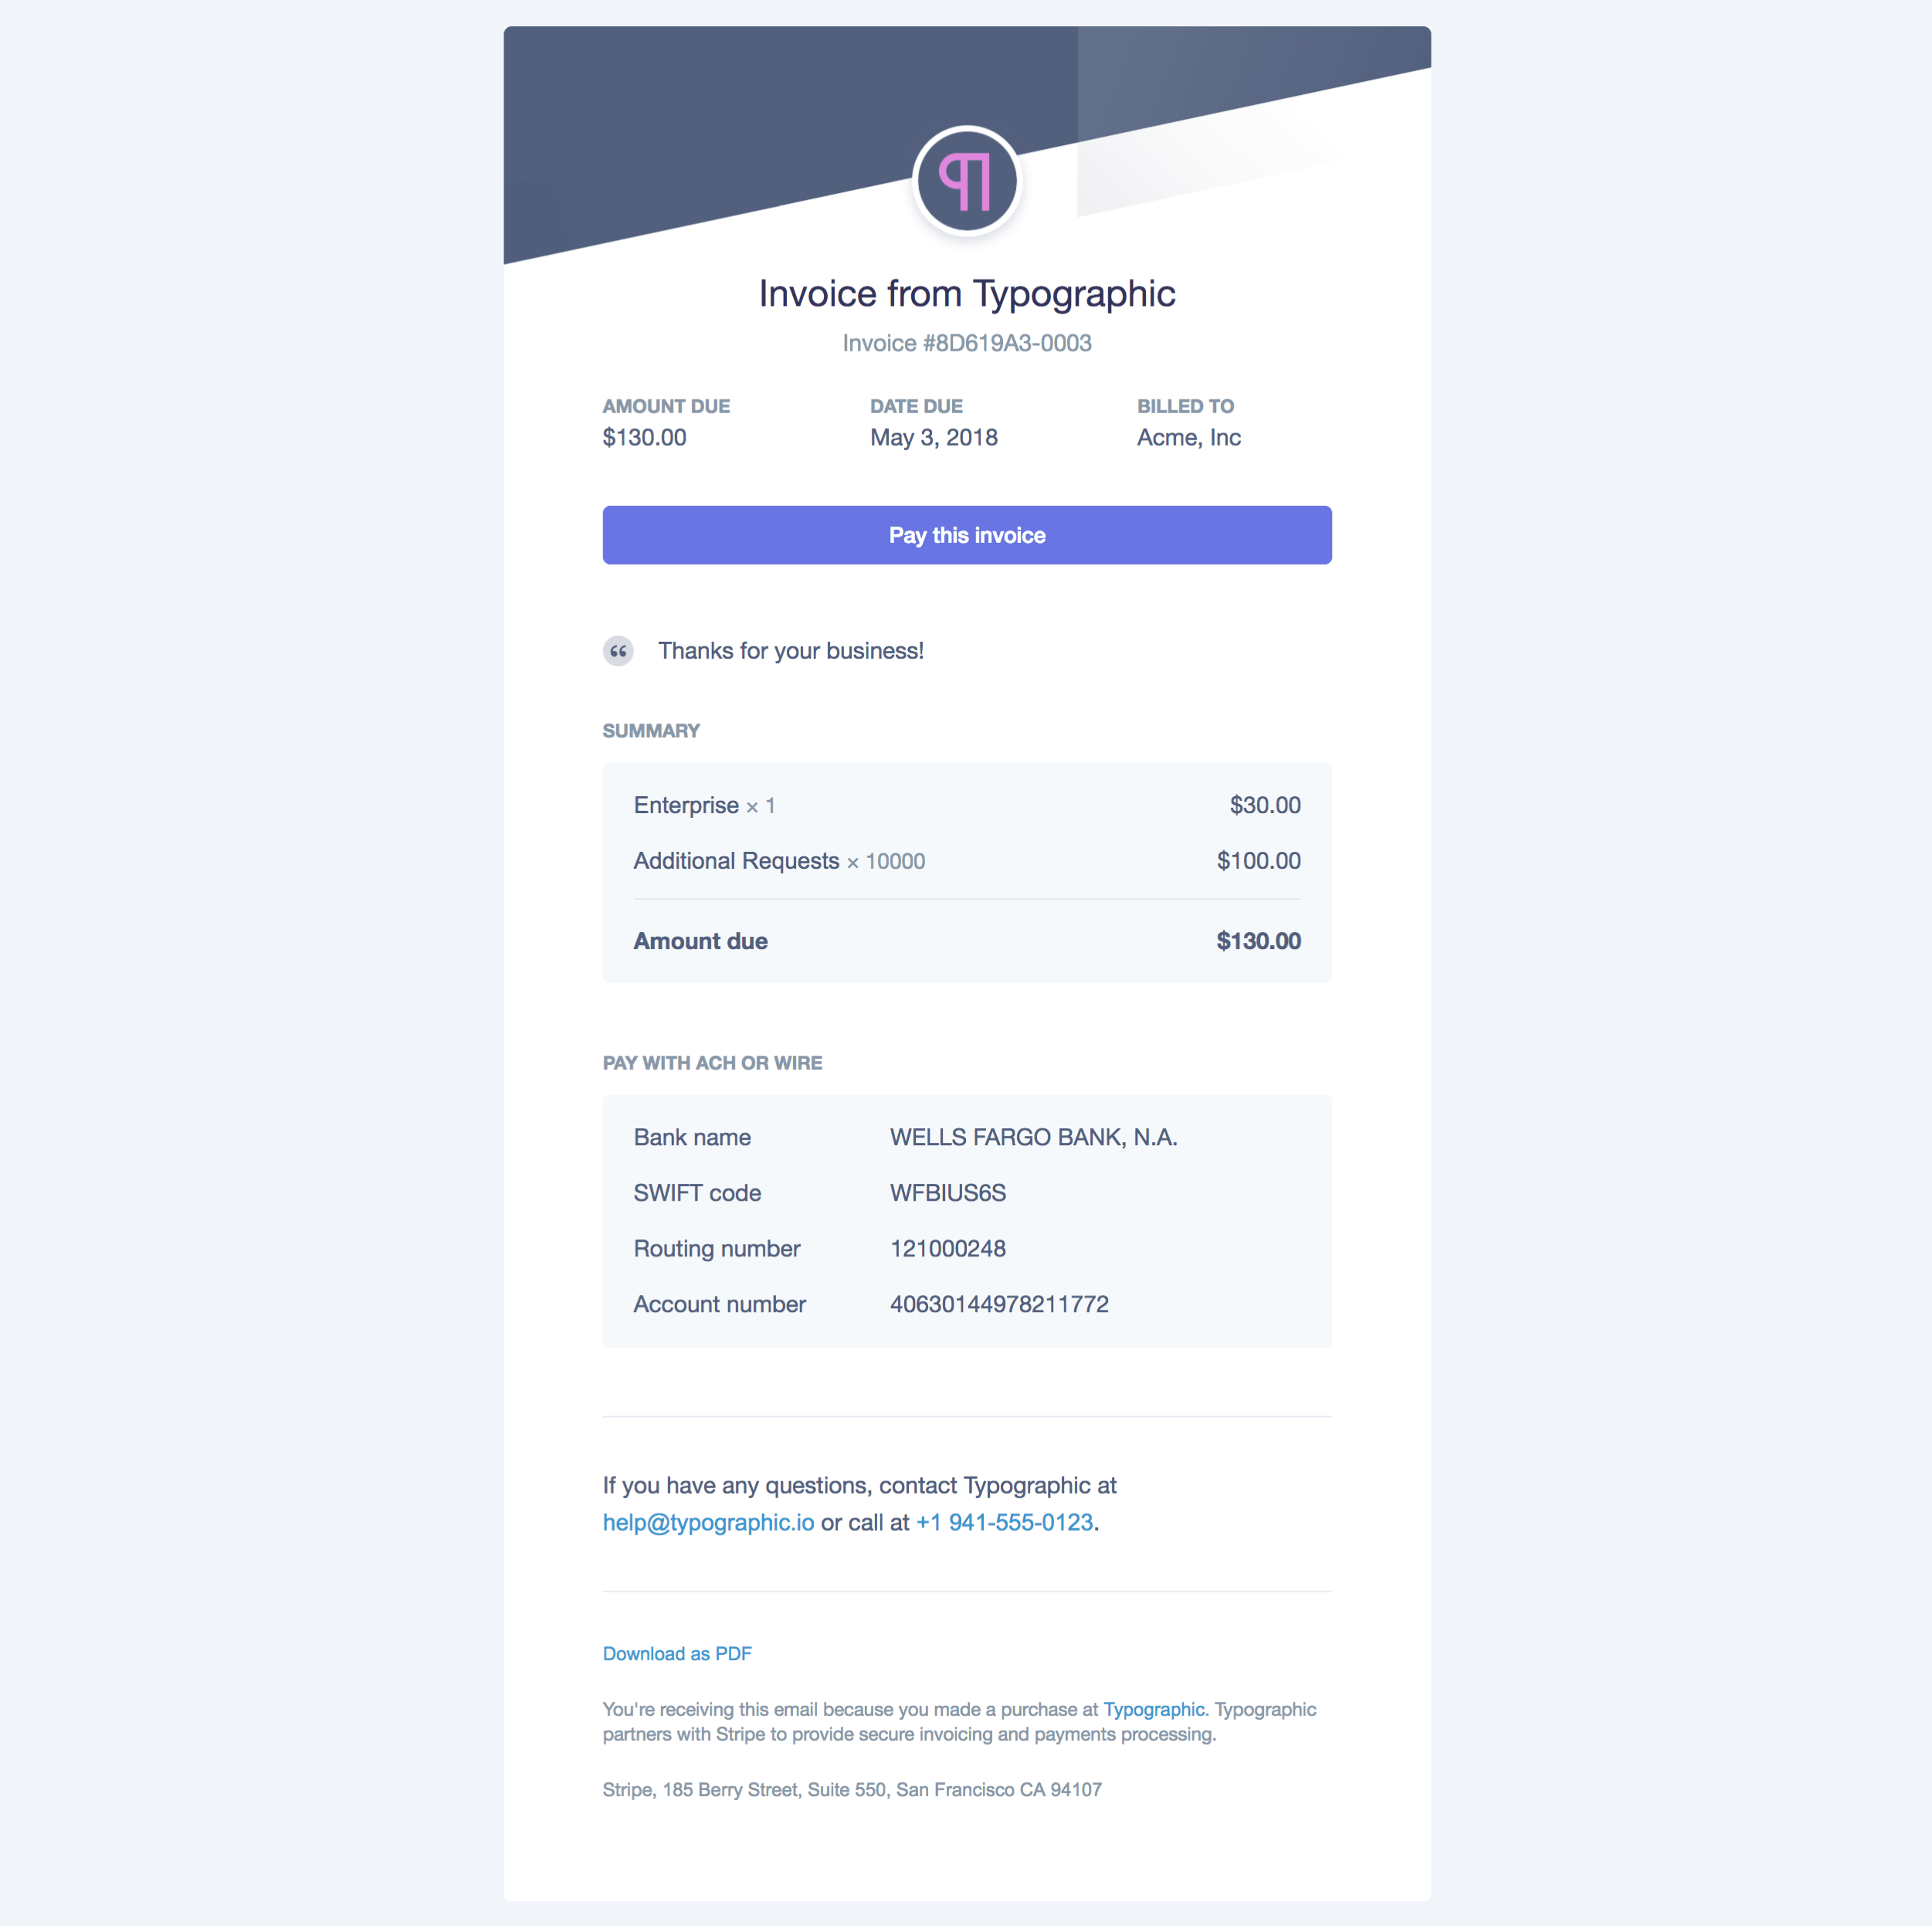 Sending Invoices To Customers - Invoice to go customer service